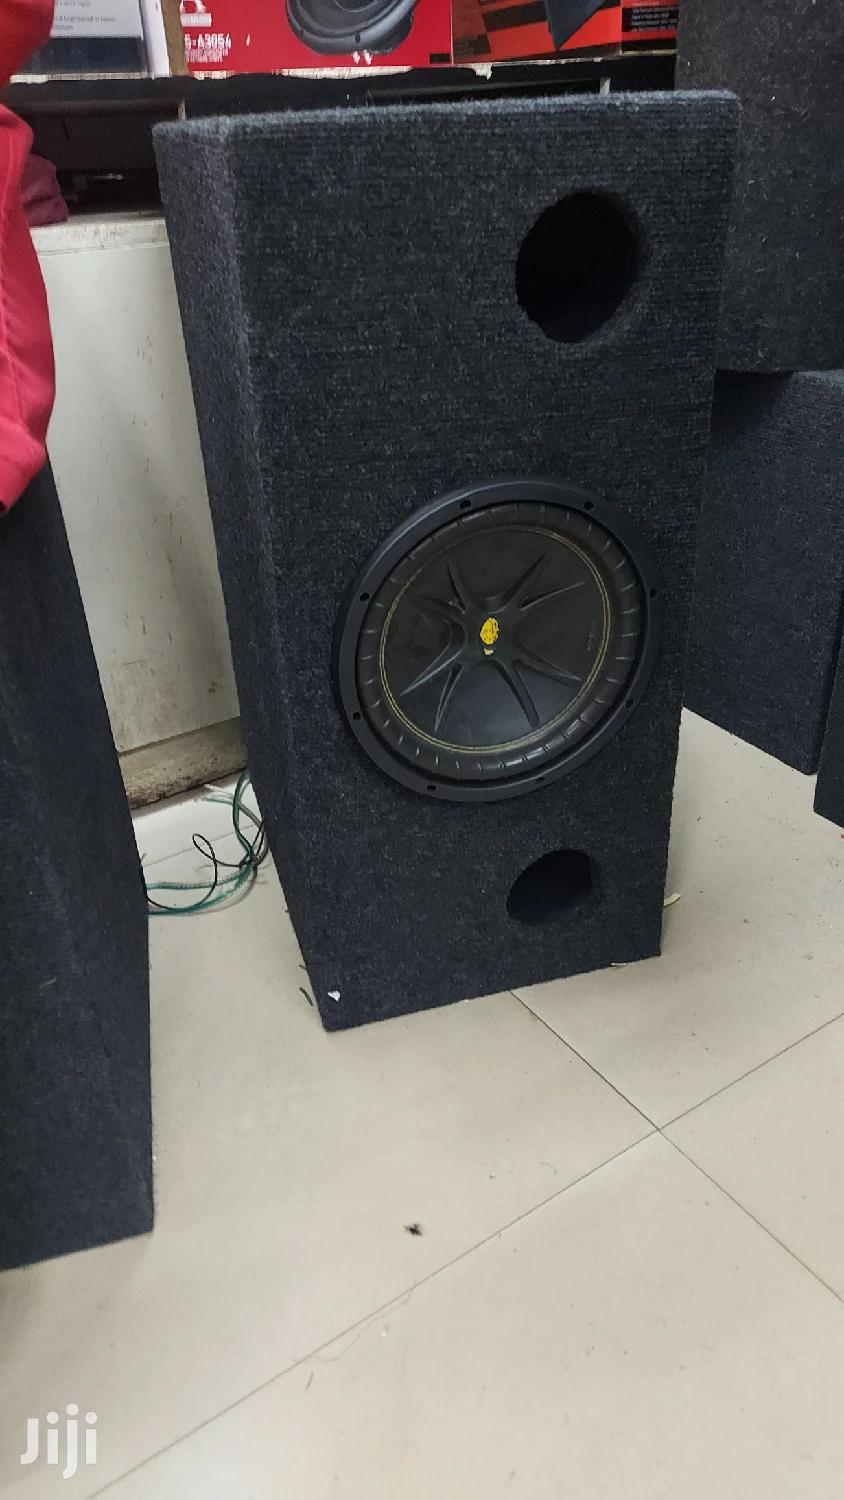 Kicker 10 Inches Deep Bass Subwoofer Used As Clean As New